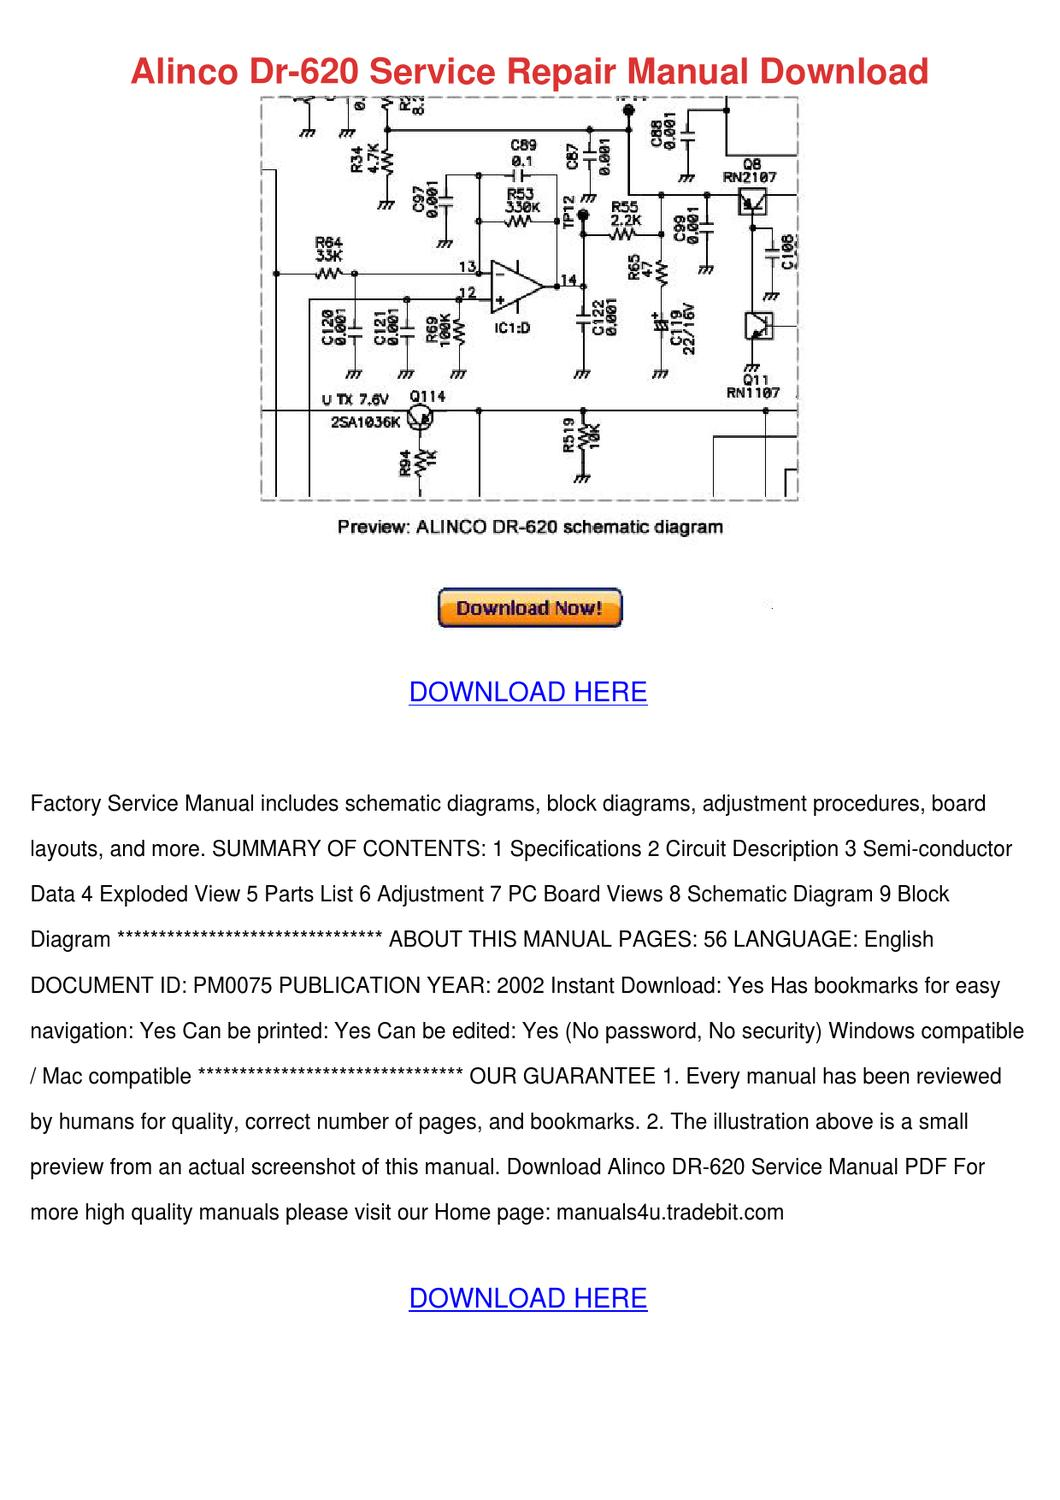 Alinco Dr 620 Service Repair Manual Download by KenHowes - issuu